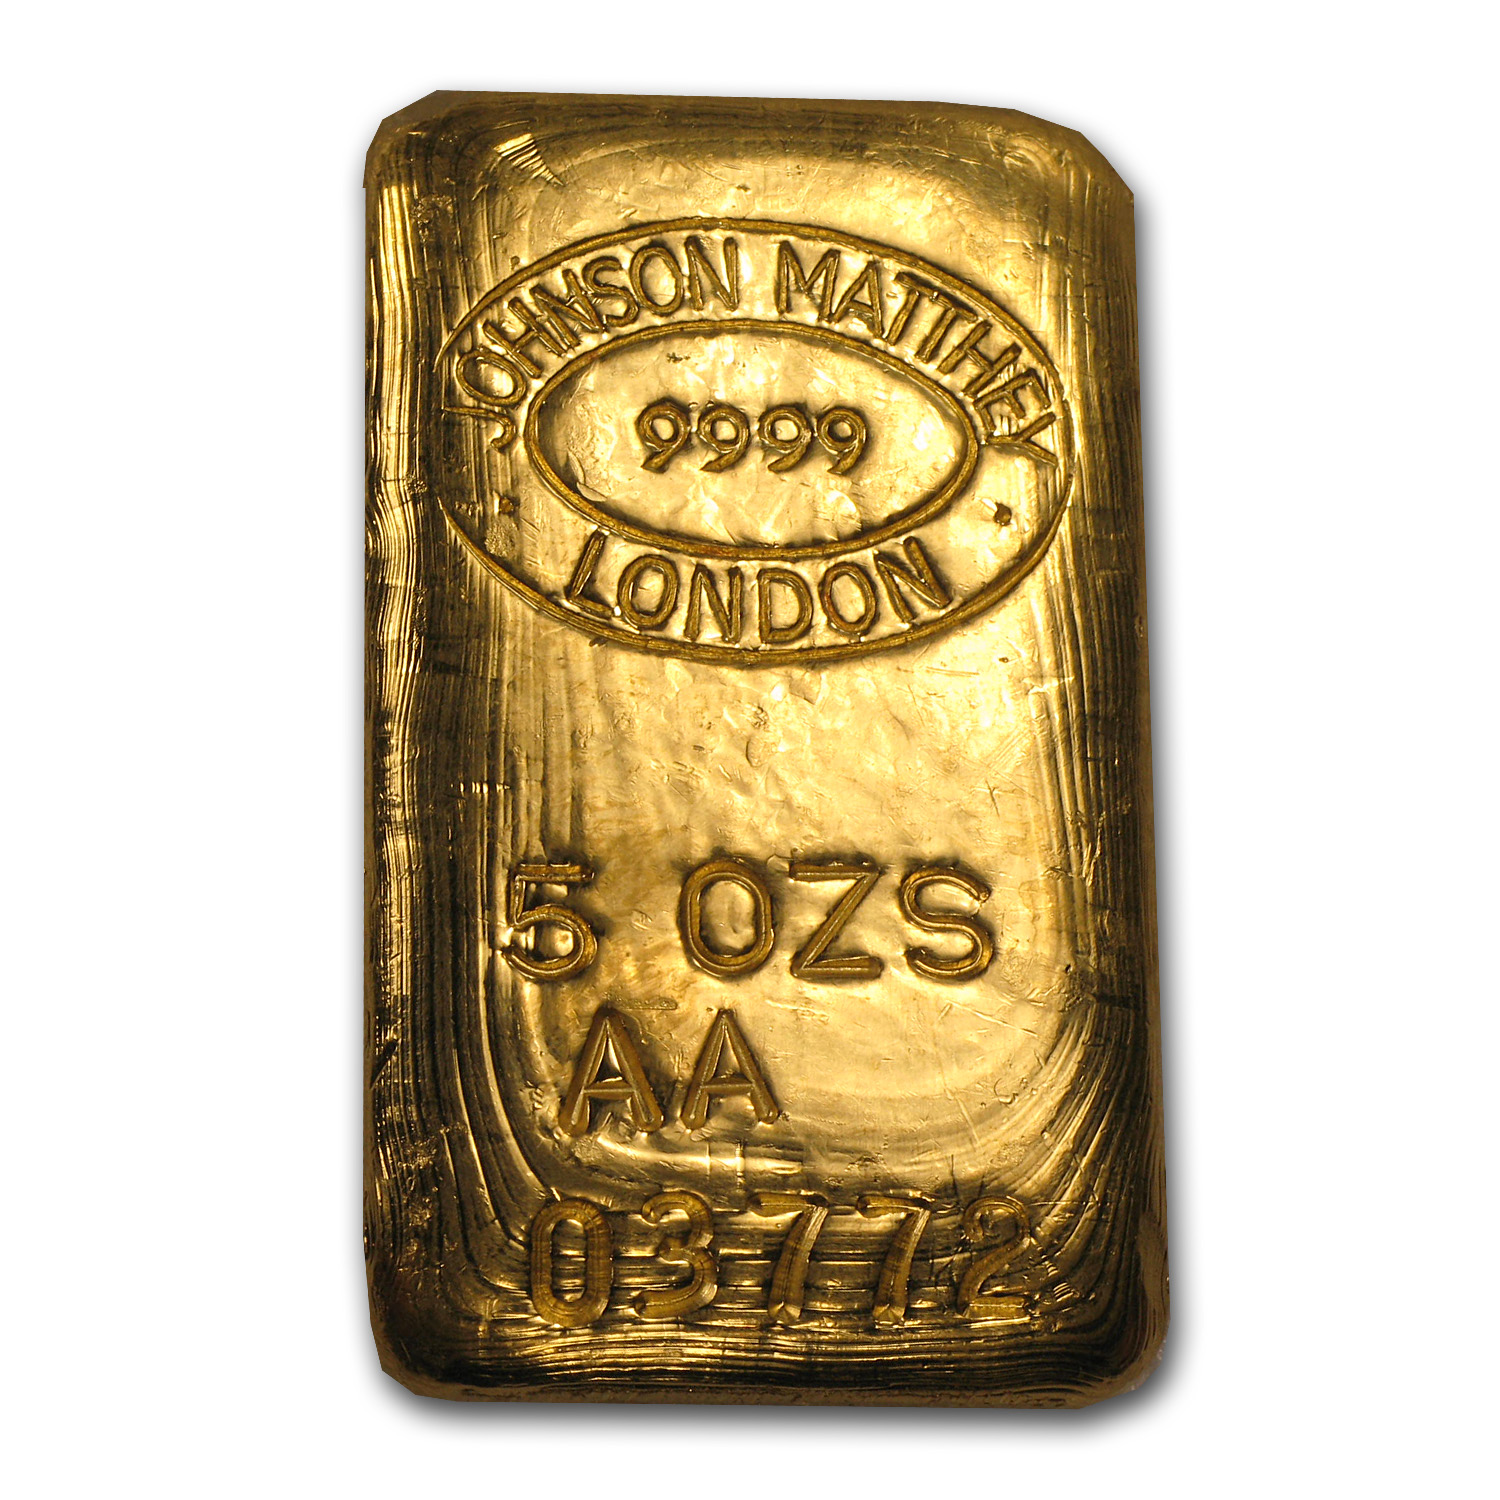 5 oz Gold Bar - Johnson Matthey-London (Poured, RNB)